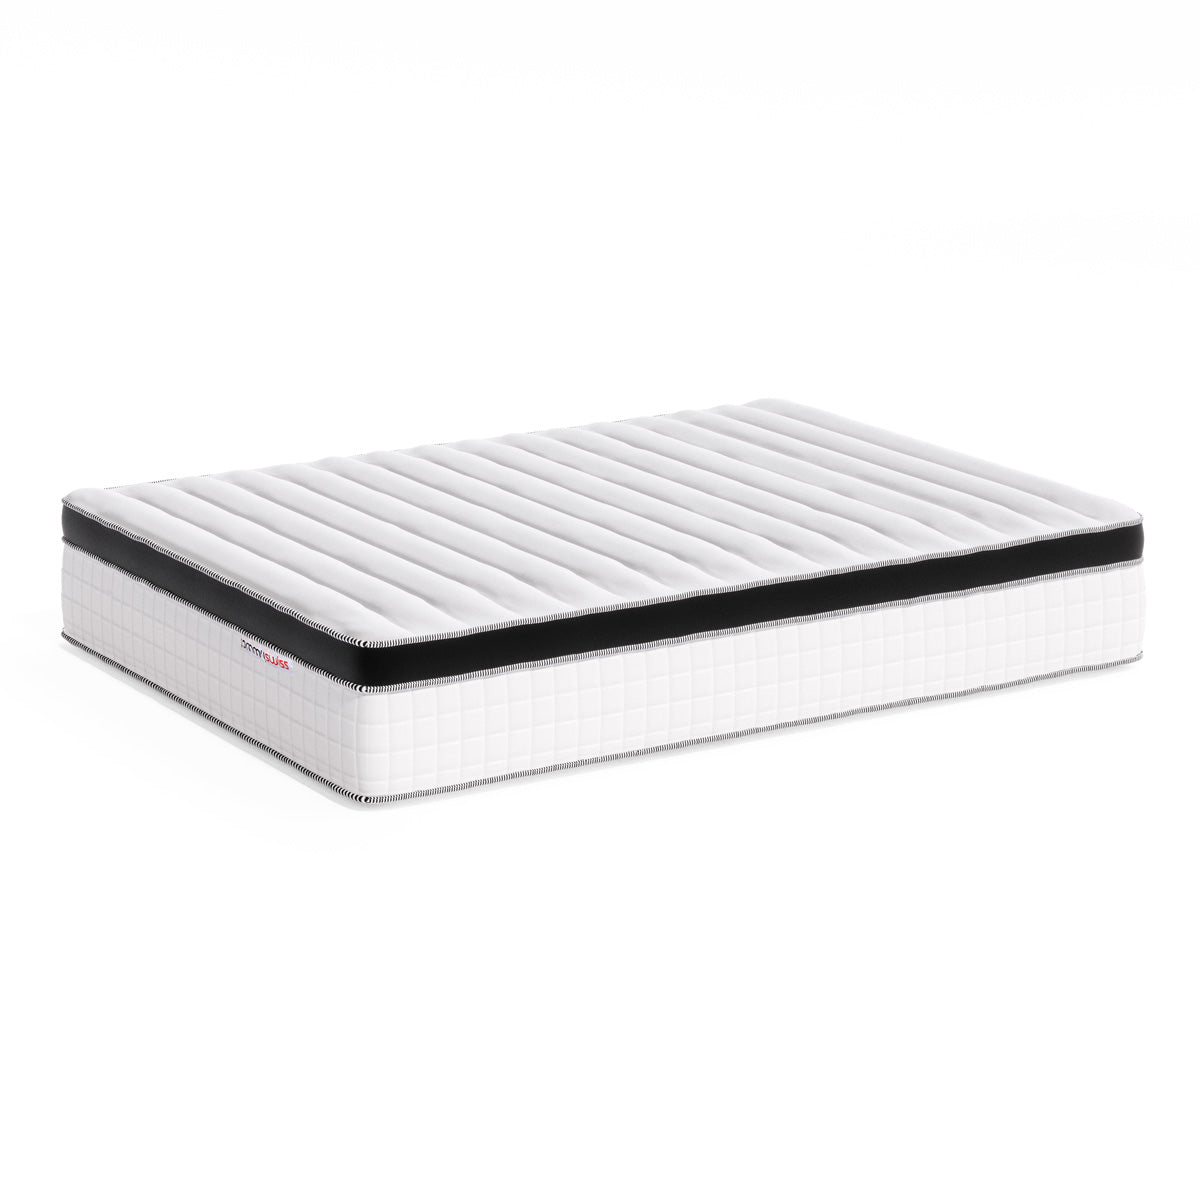 Queen Mattress Pocket Spring with Latex & Memory Foam (Supreme Collection, 31cm)